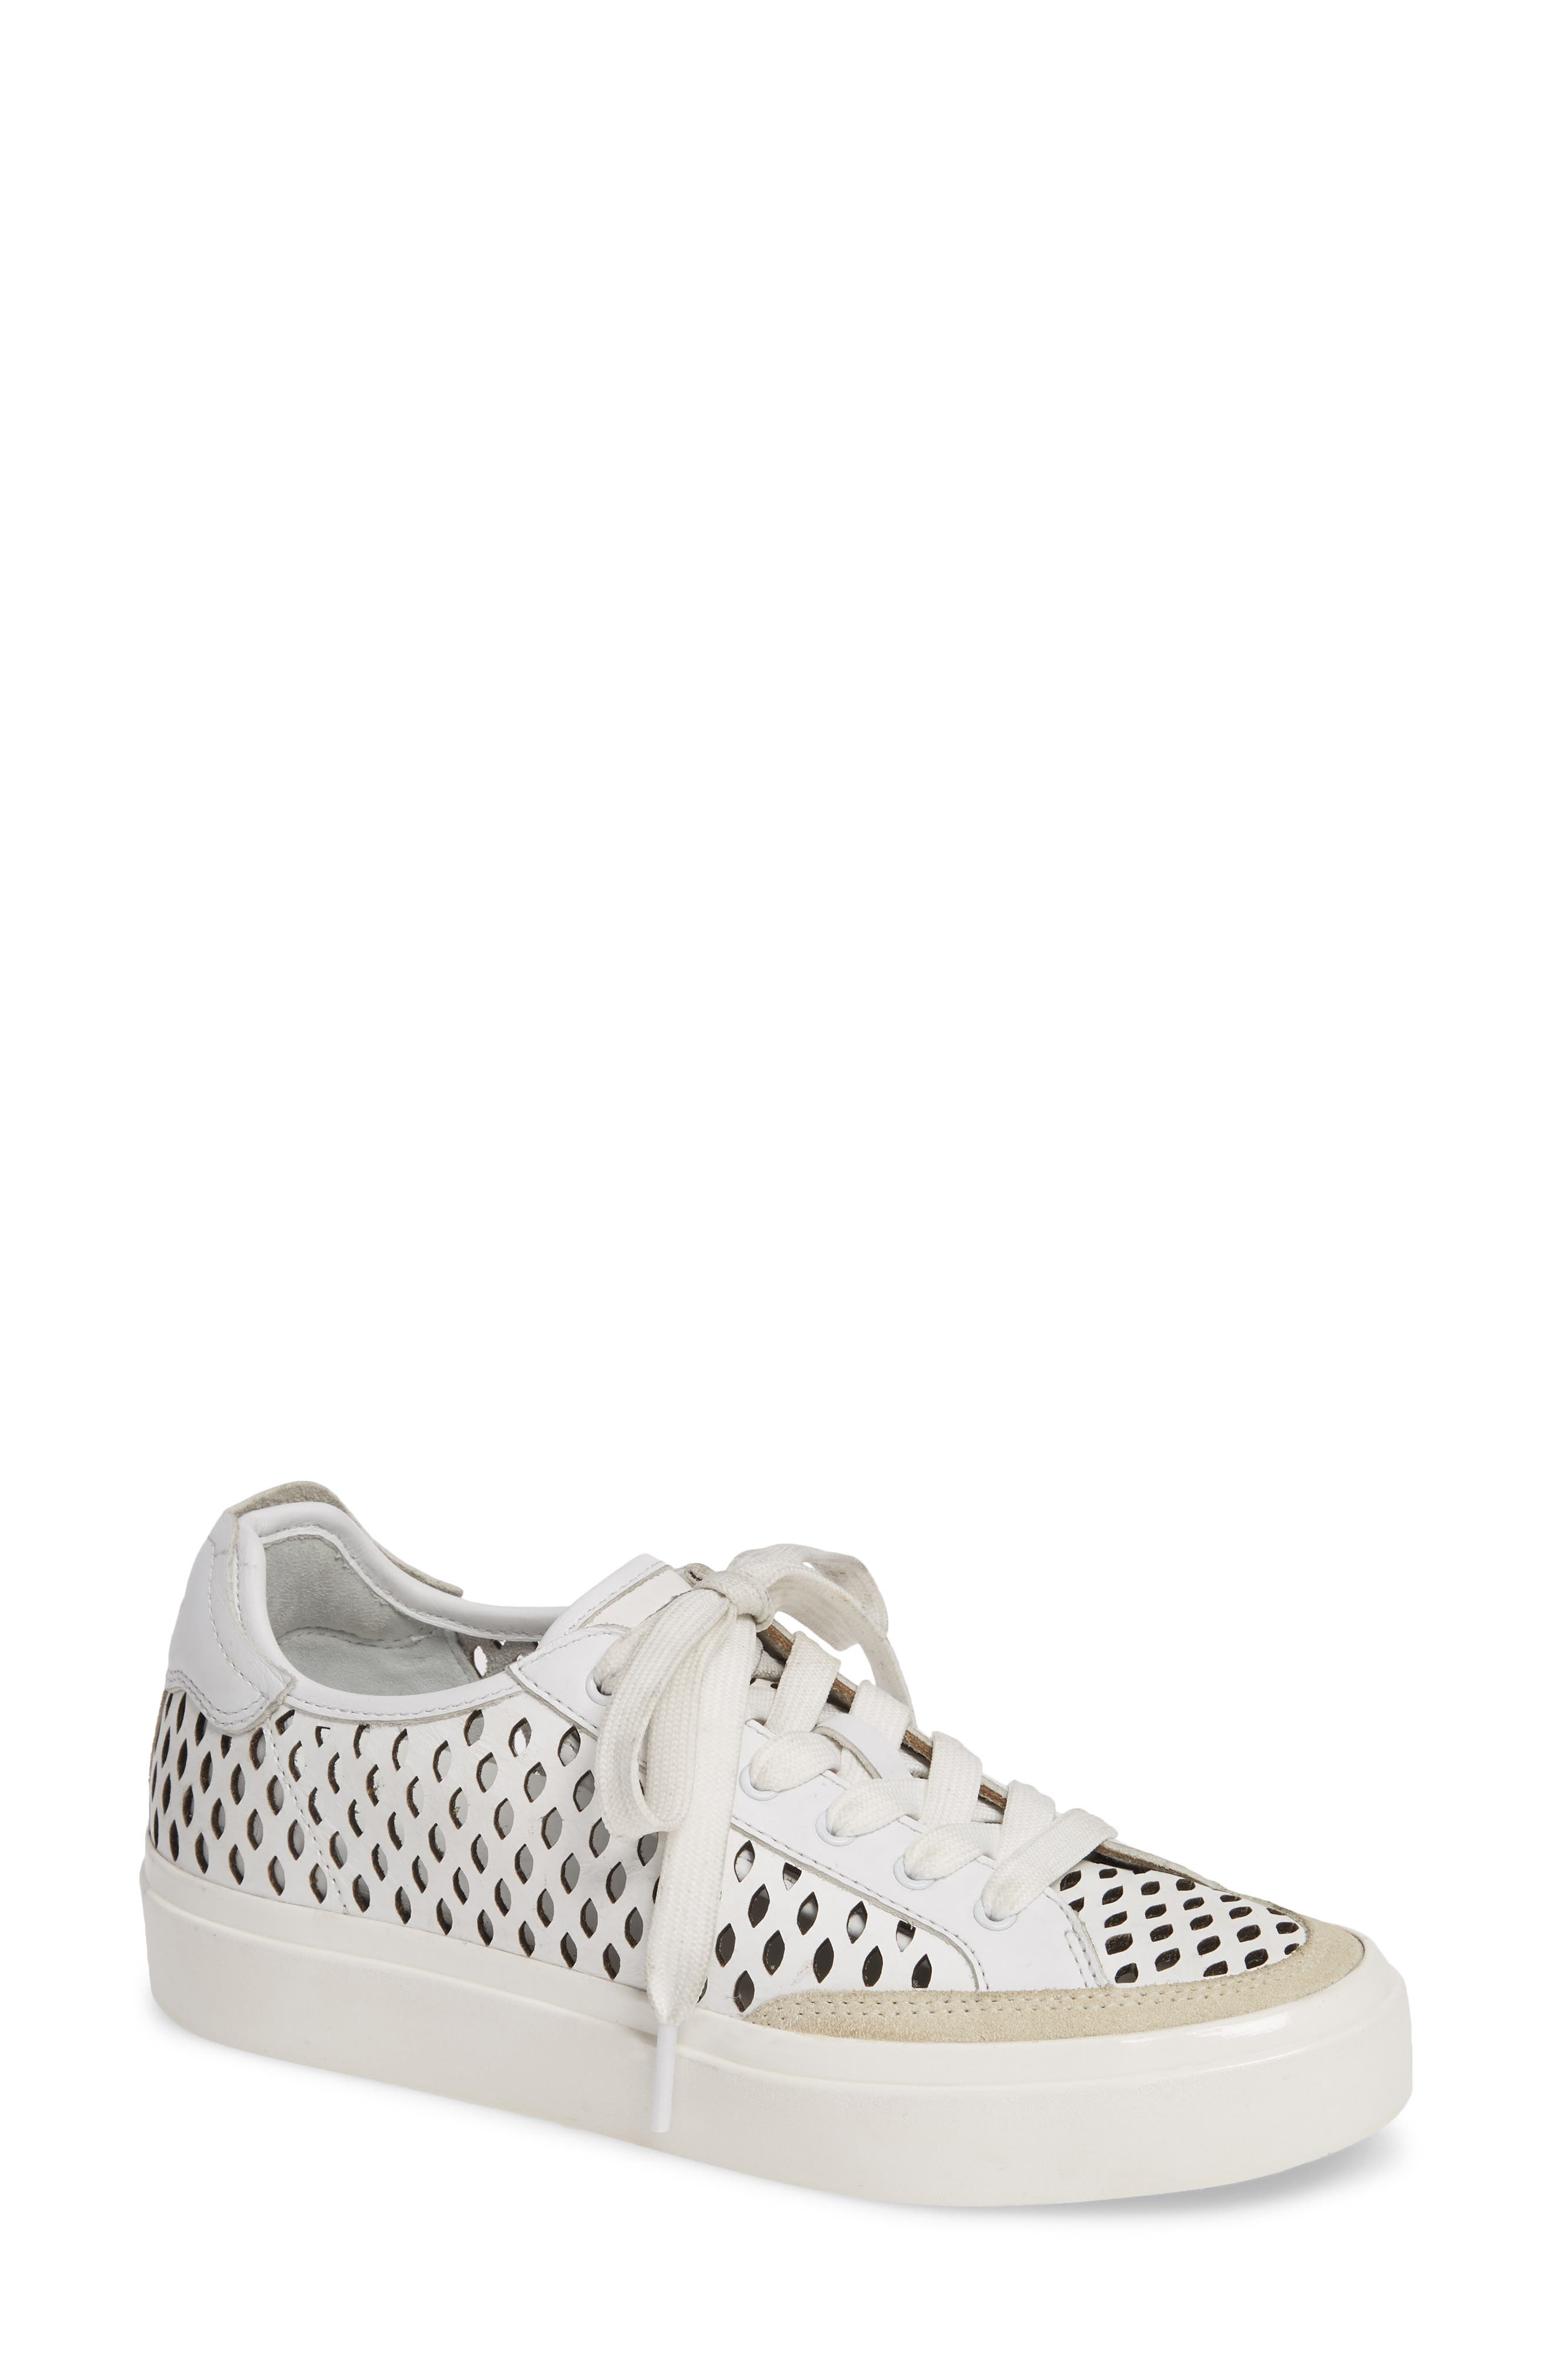 Rag & Bone Army Perforated Low Top Sneaker, White